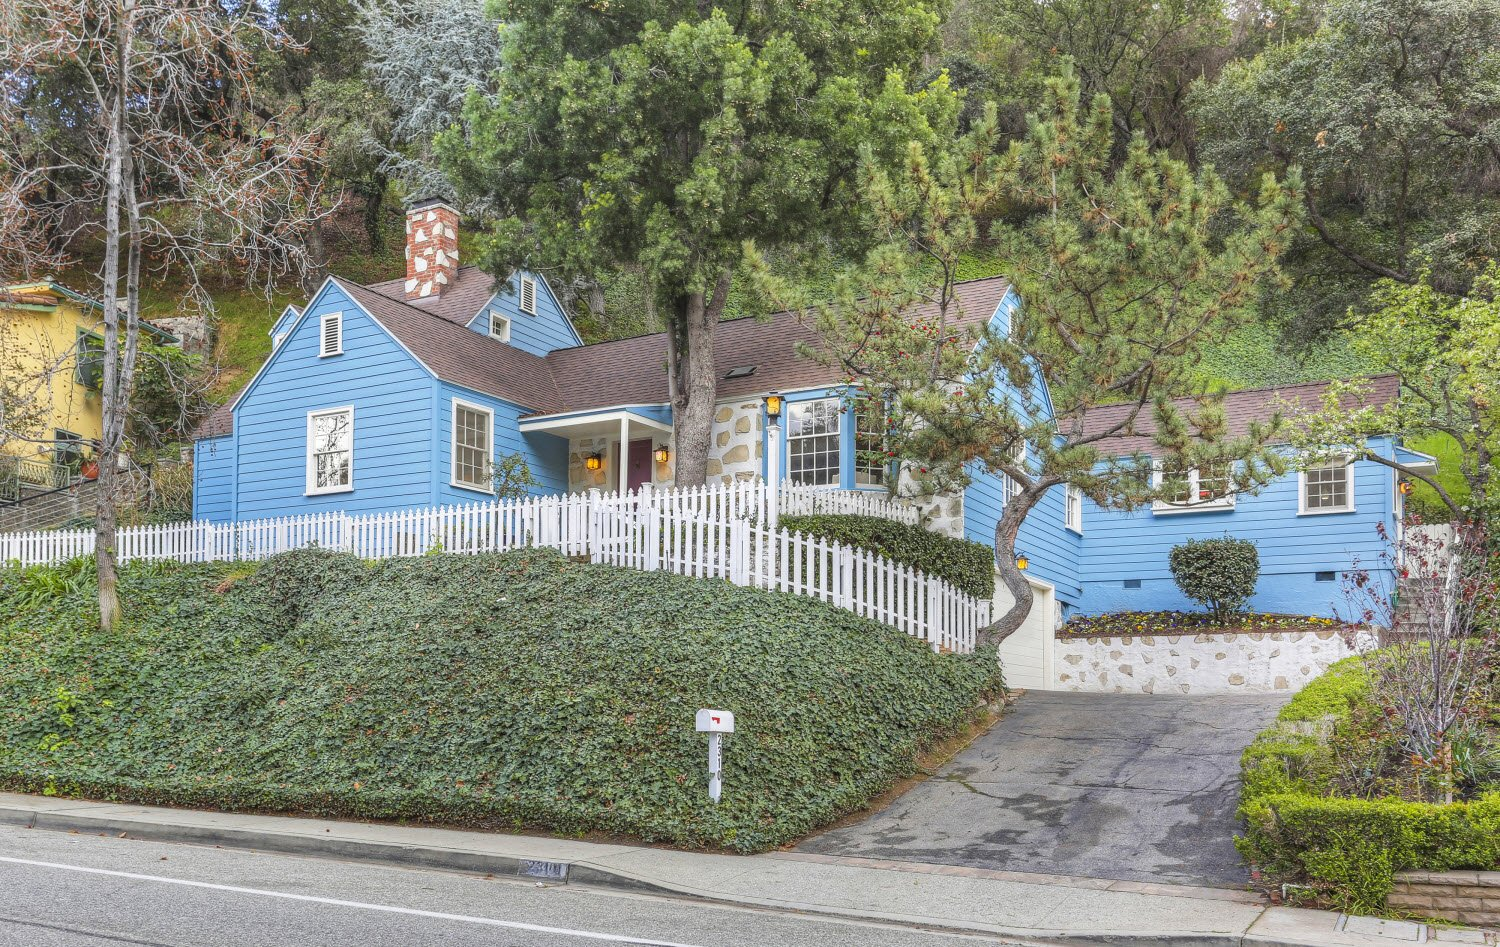 Loveable blue Pennsylvania Dutch Cottage by Hollywood architect Gerard Colford for sale in Glendale CA